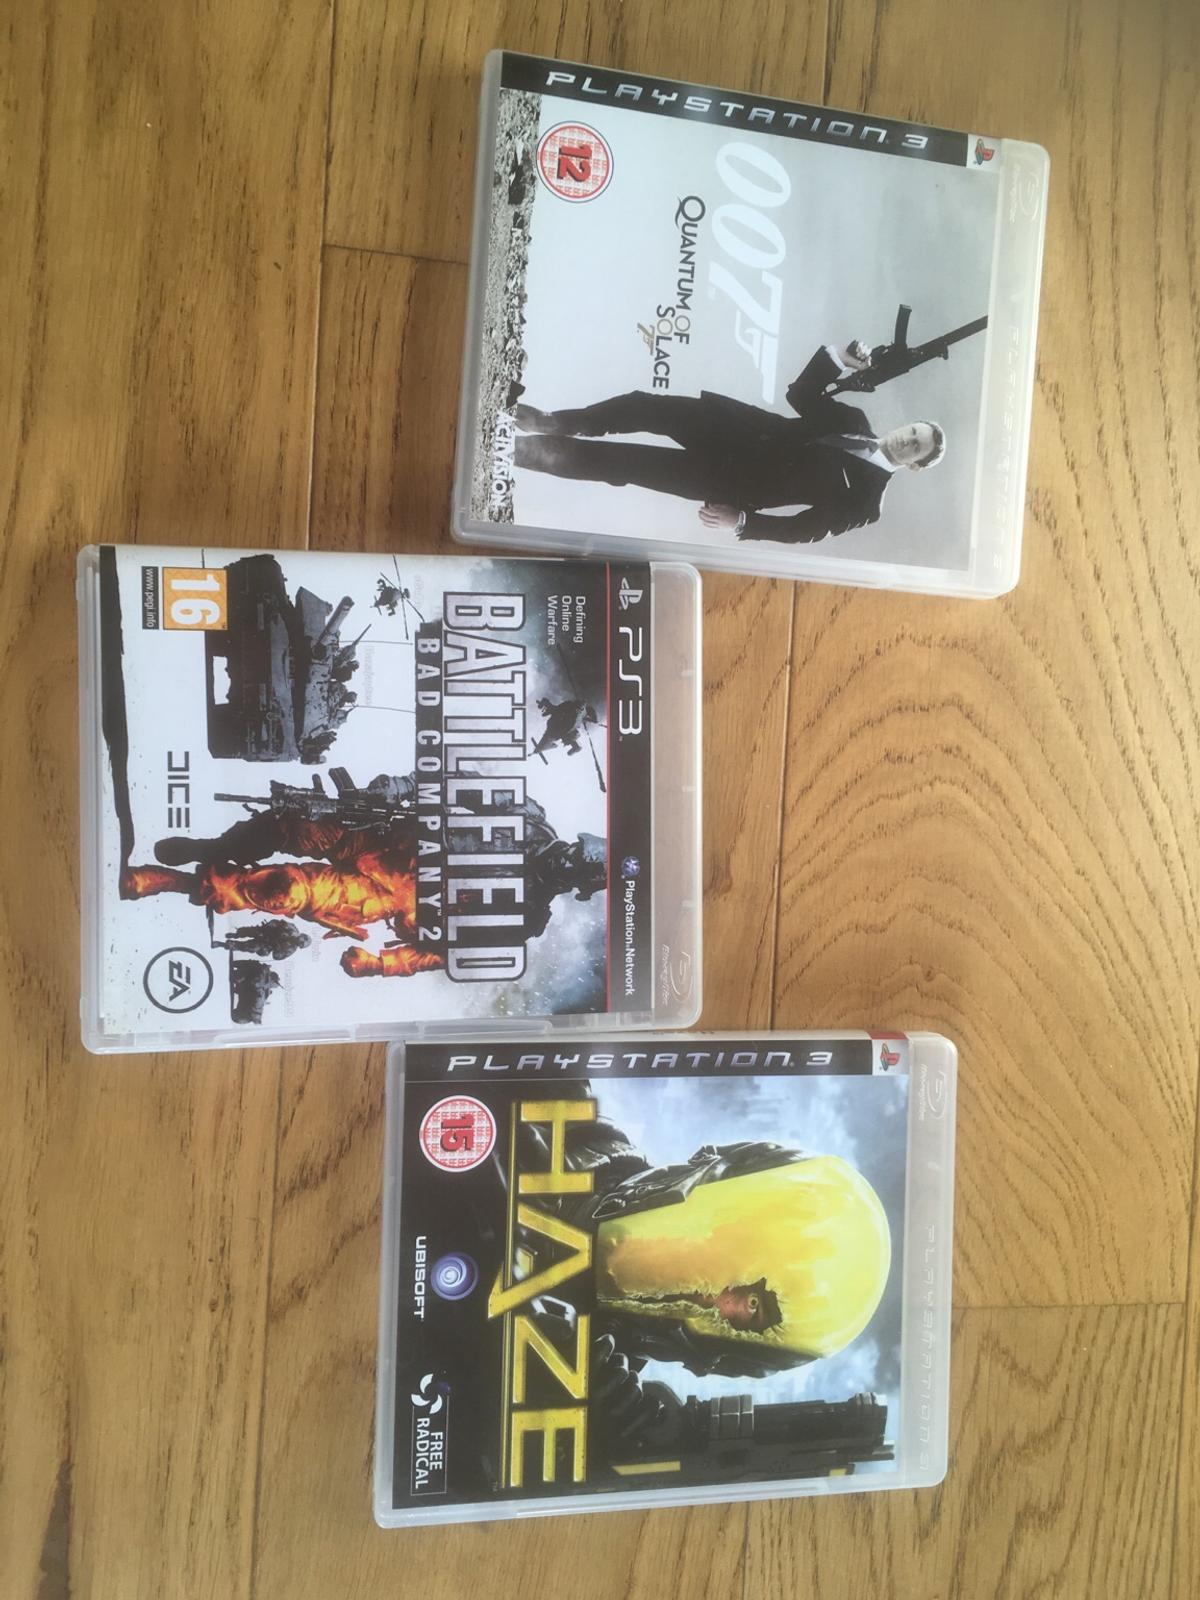 Haze Battlefield 007 Ps3 Games In Pe13 Fenland For 9 00 For Sale Shpock